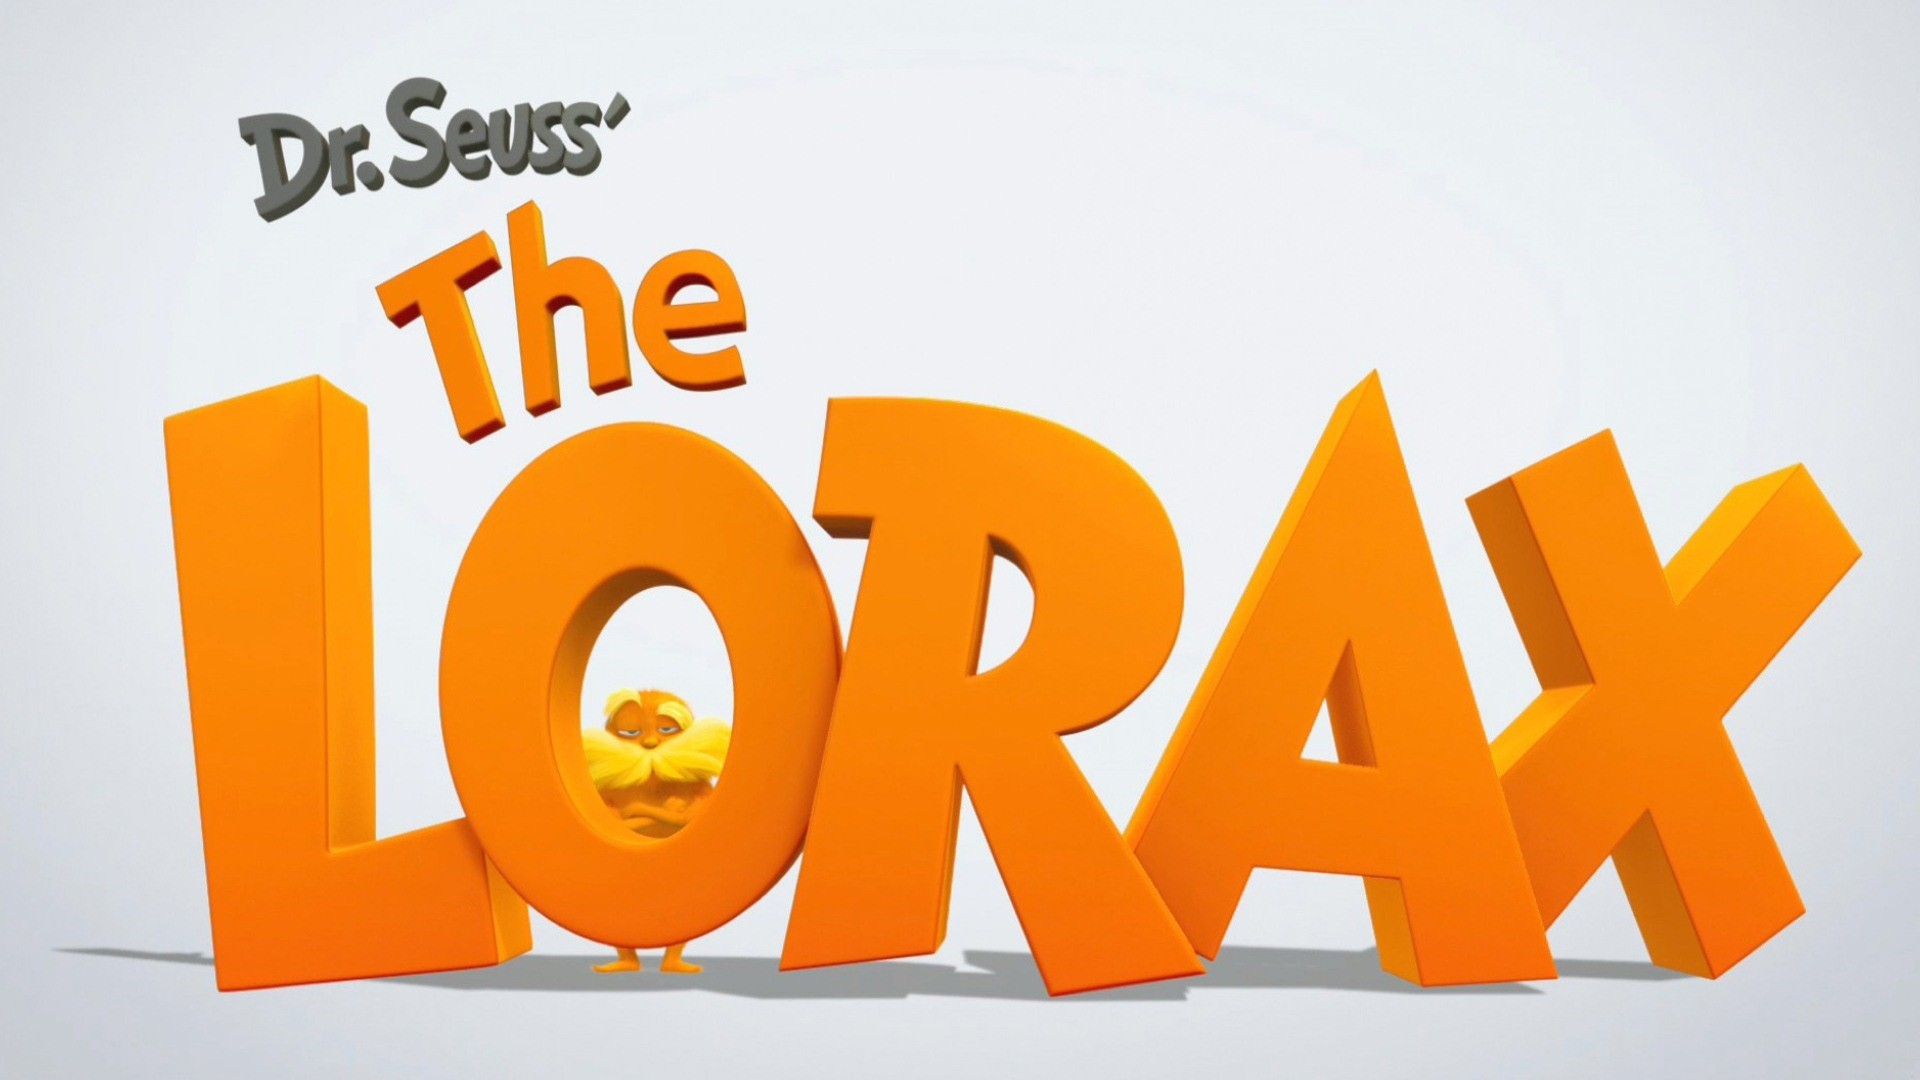 Res: 1920x1080, Dr. Seuss' The Lorax HD wallpapers #1 - .